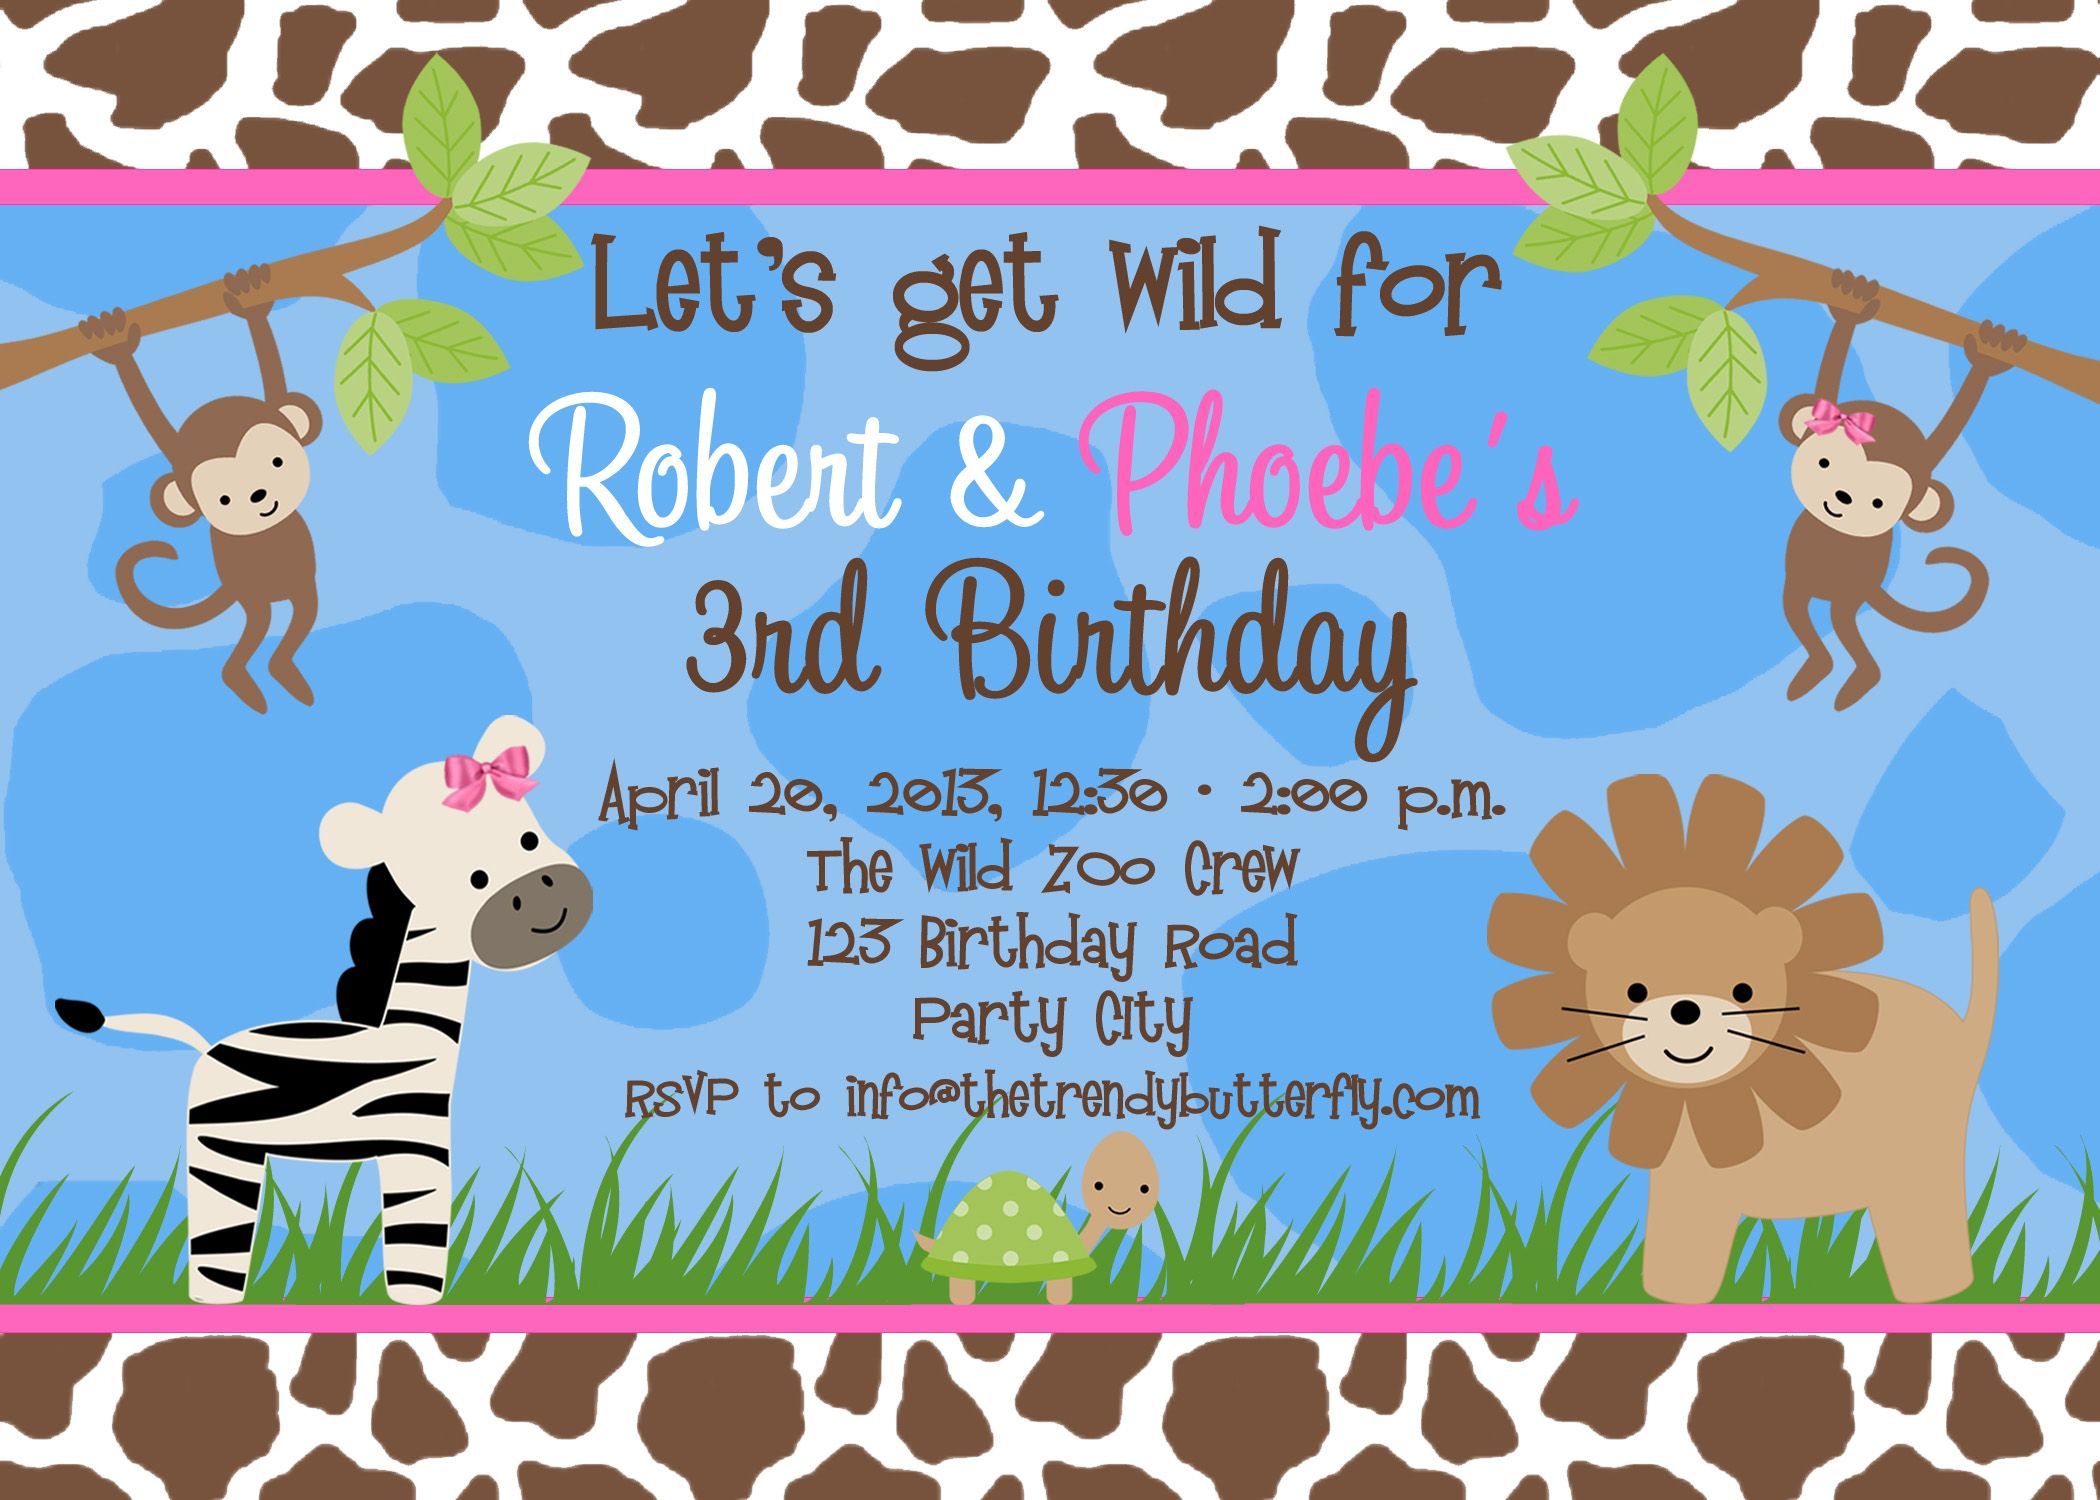 Free Birthday Party Invitation Templates | Party invitation ...